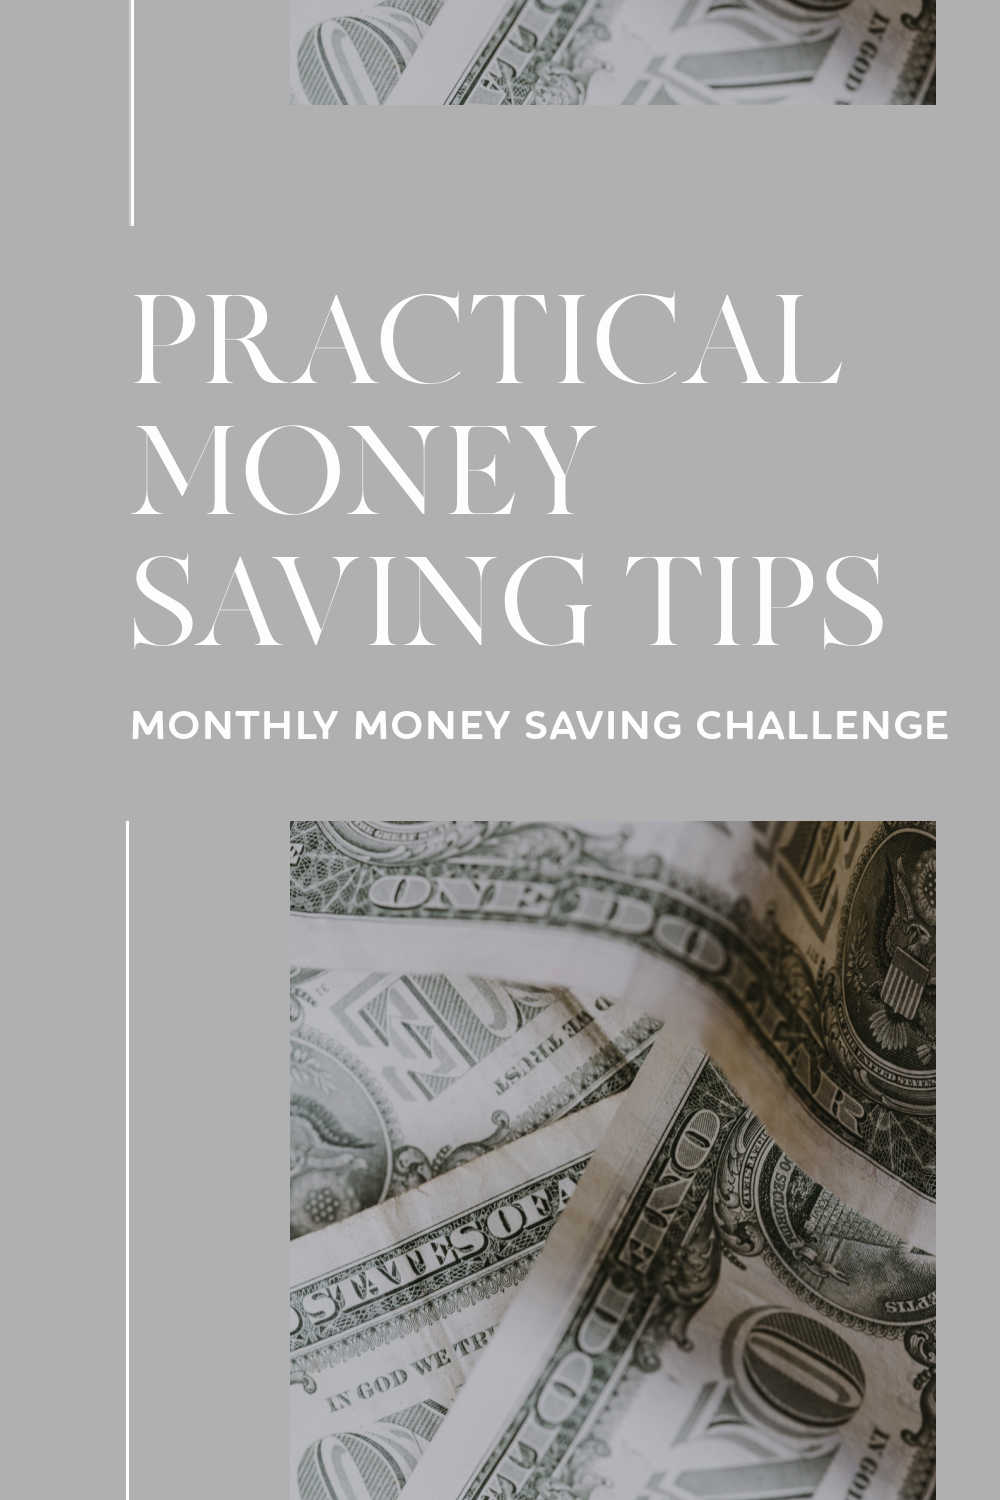 PRACTICAL MONEY SAVING MONTHLY TIPS